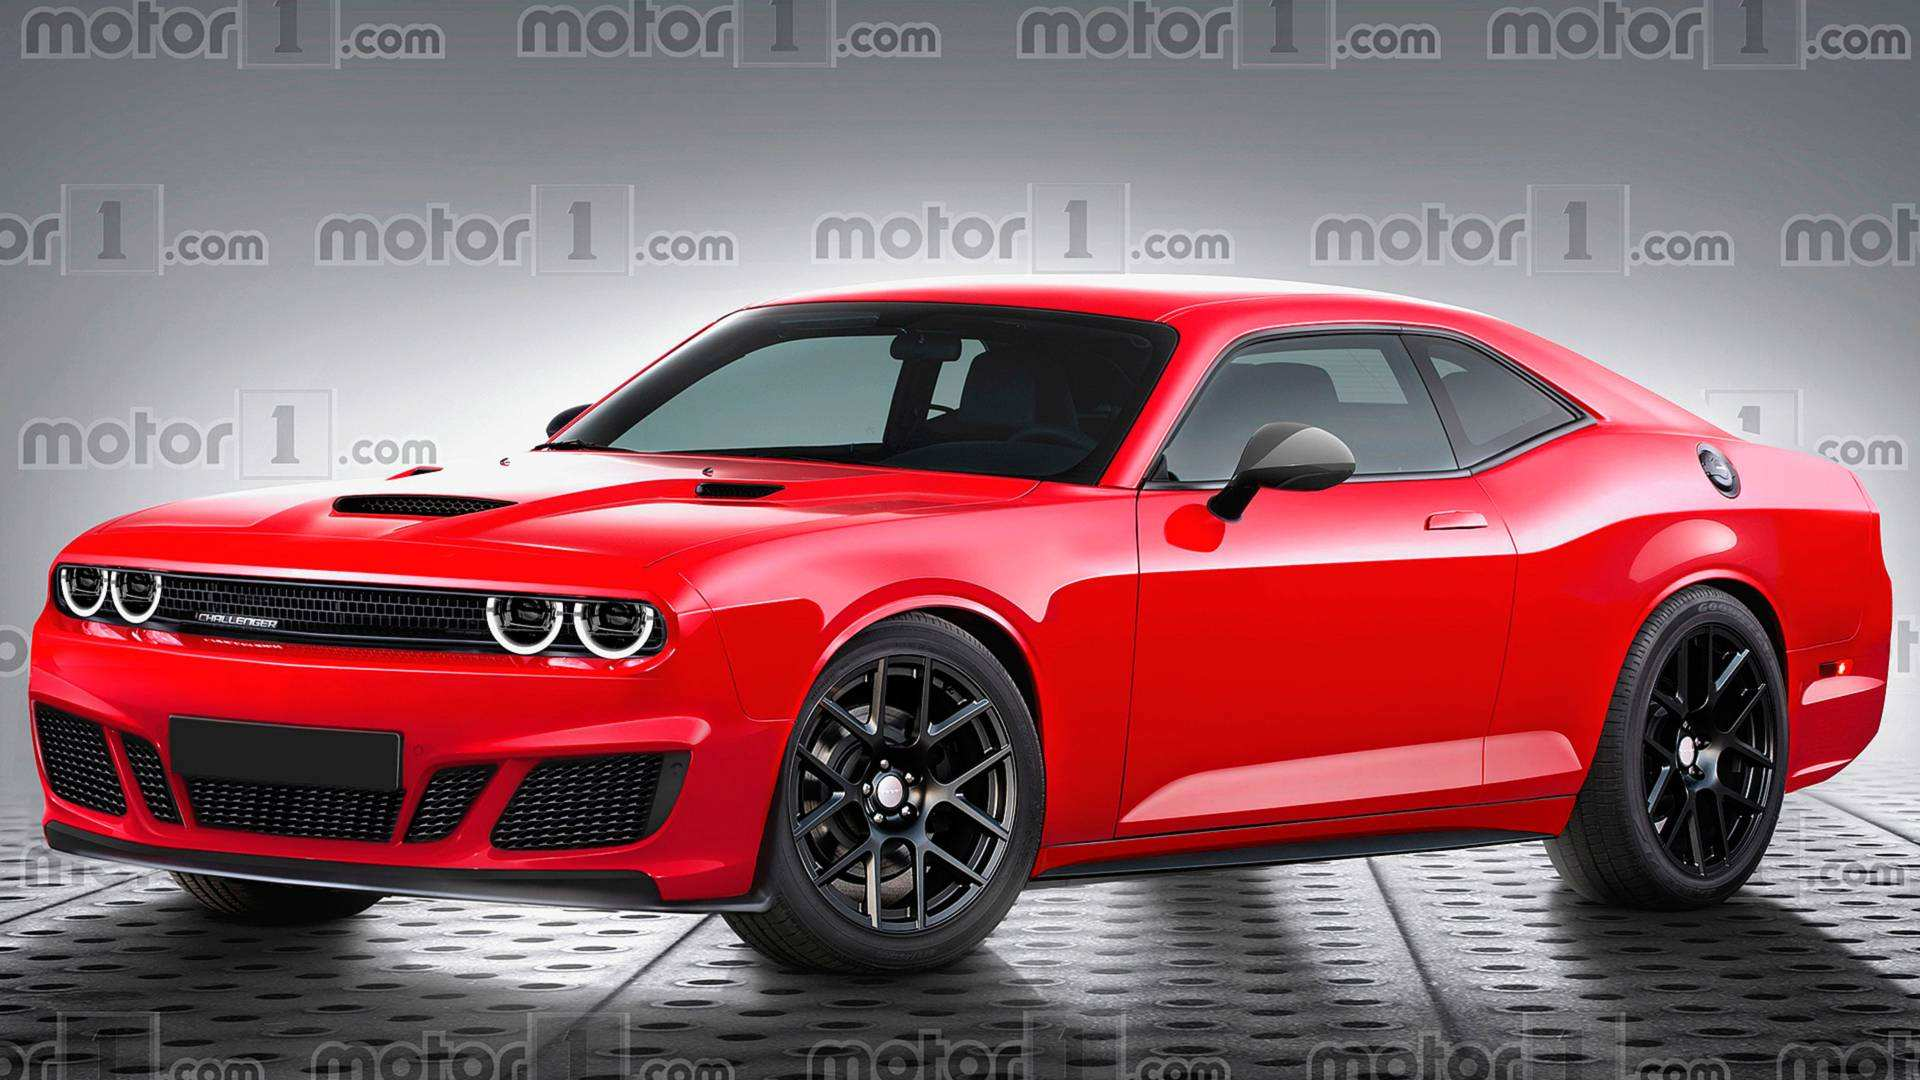 23 Concept of Dodge Charger Redesign 2020 Model for Dodge Charger Redesign 2020